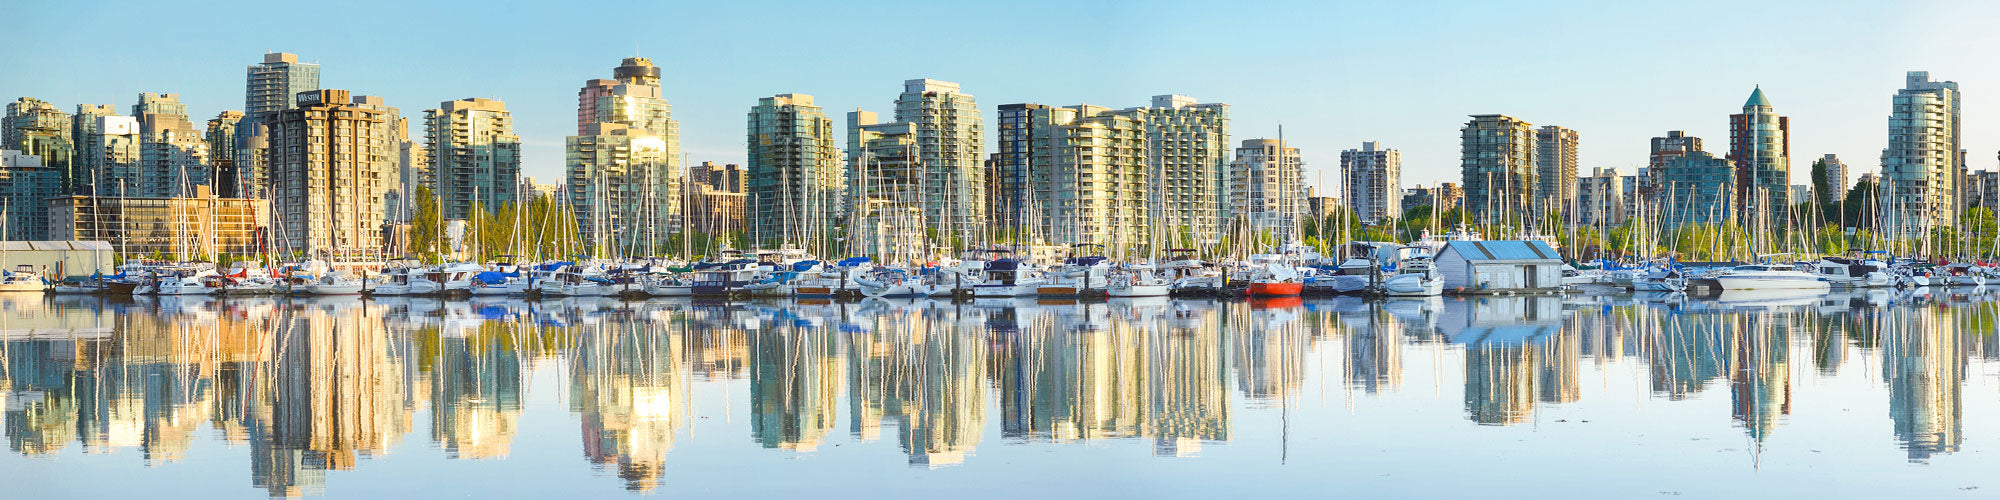 Fine Art Photography Prints of False Creek  - Satellite Images of Earth - Point Two Design